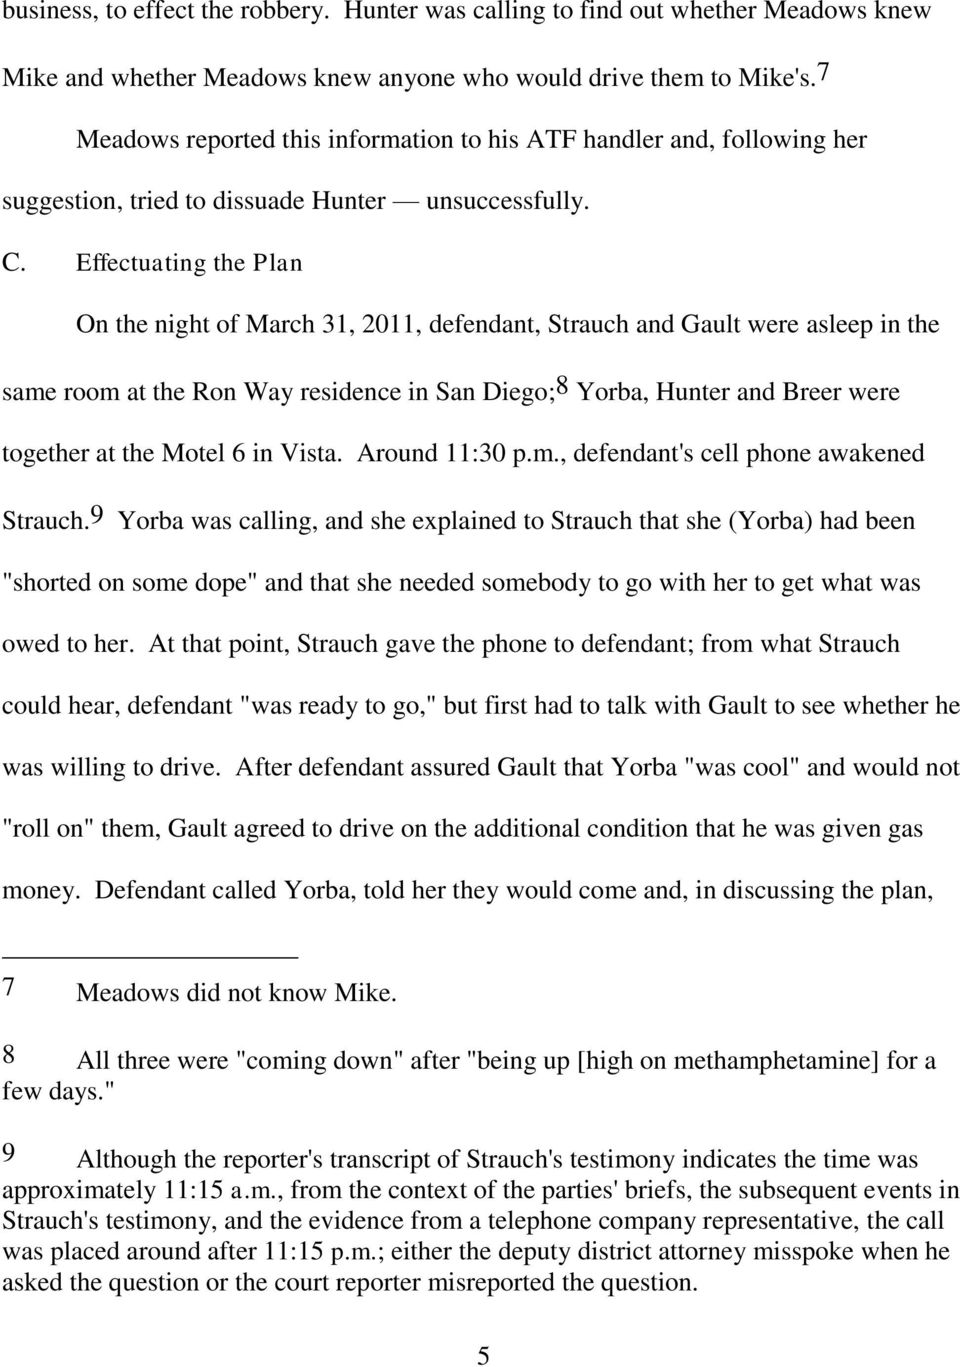 Effectuating the Plan On the night of March 31, 2011, defendant, Strauch and Gault were asleep in the same room at the Ron Way residence in San Diego;8 Yorba, Hunter and Breer were together at the